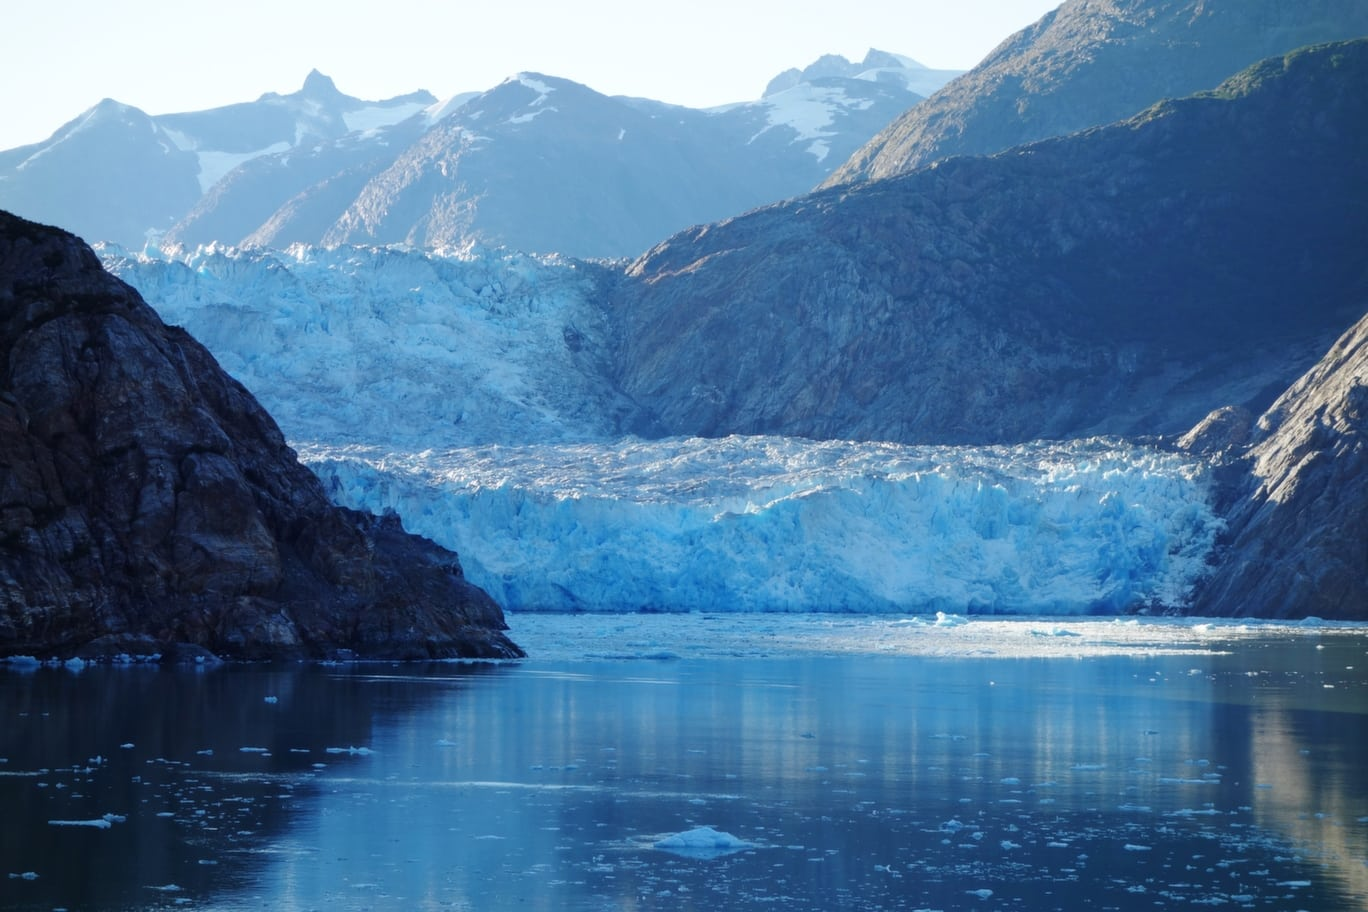 Alaska One of the Top 8 Places to Visit on a Cruise in 2018